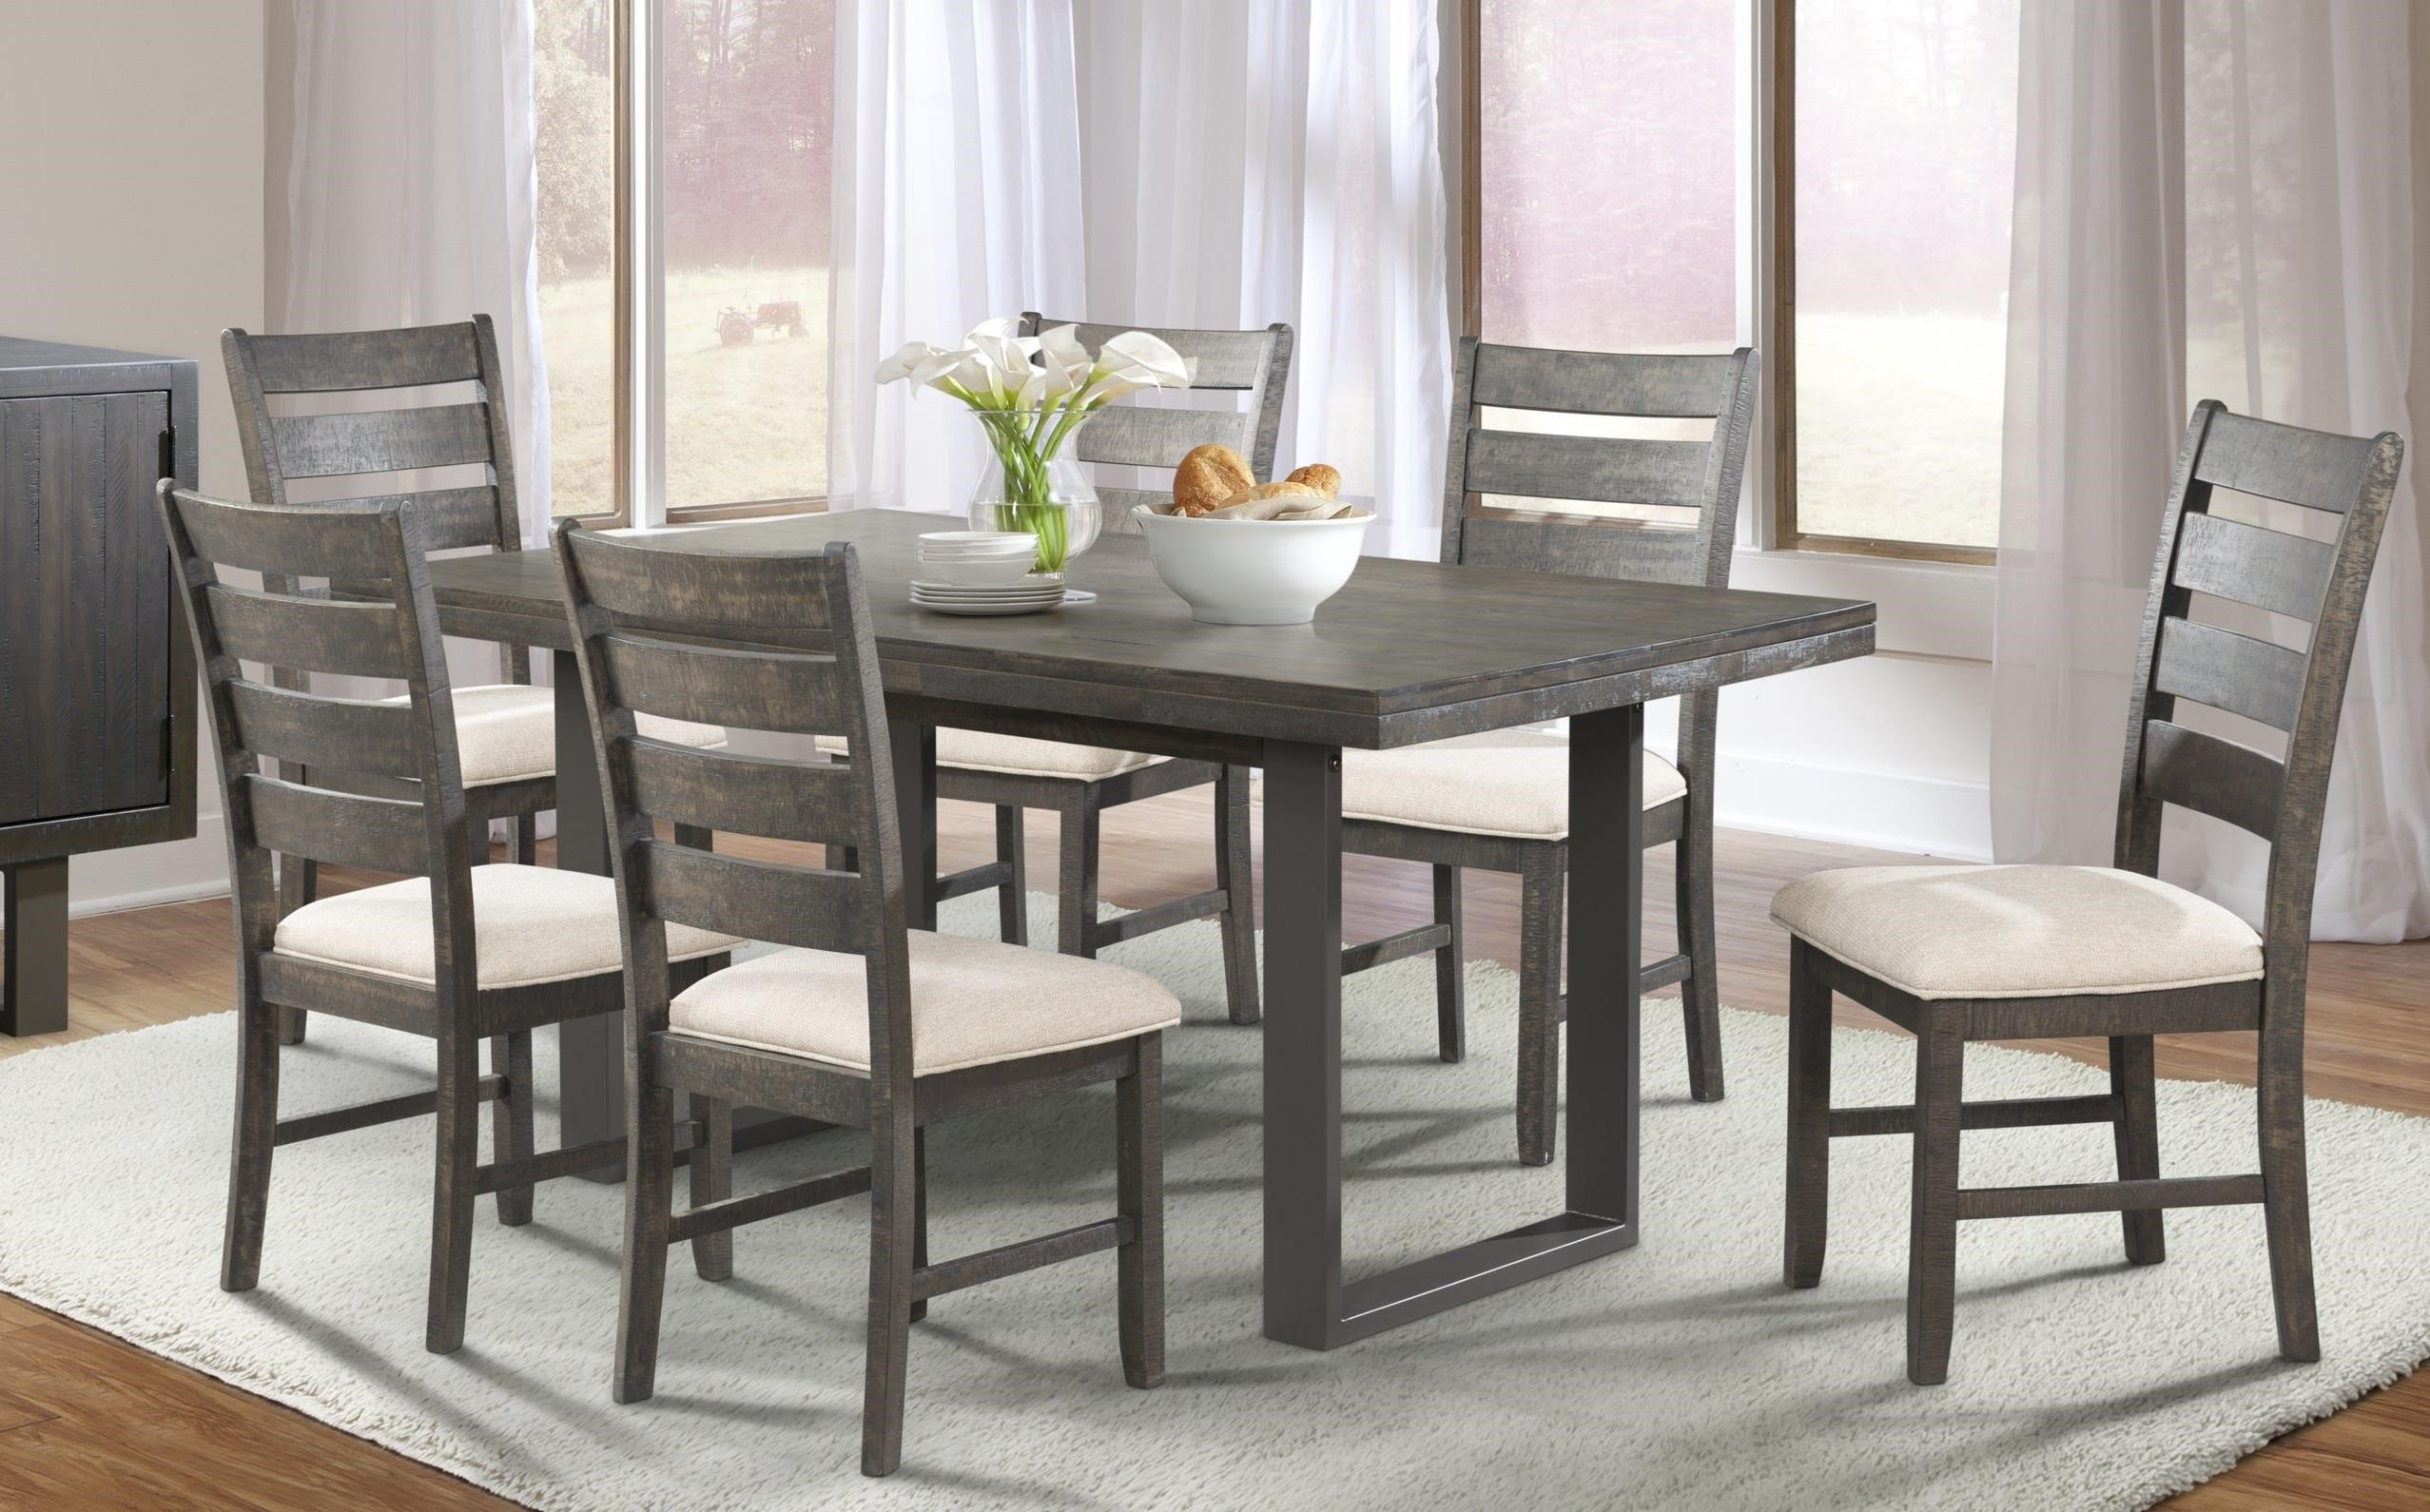 Elements International Sawyer Dining Table & 6 Side Chairs - Great ...